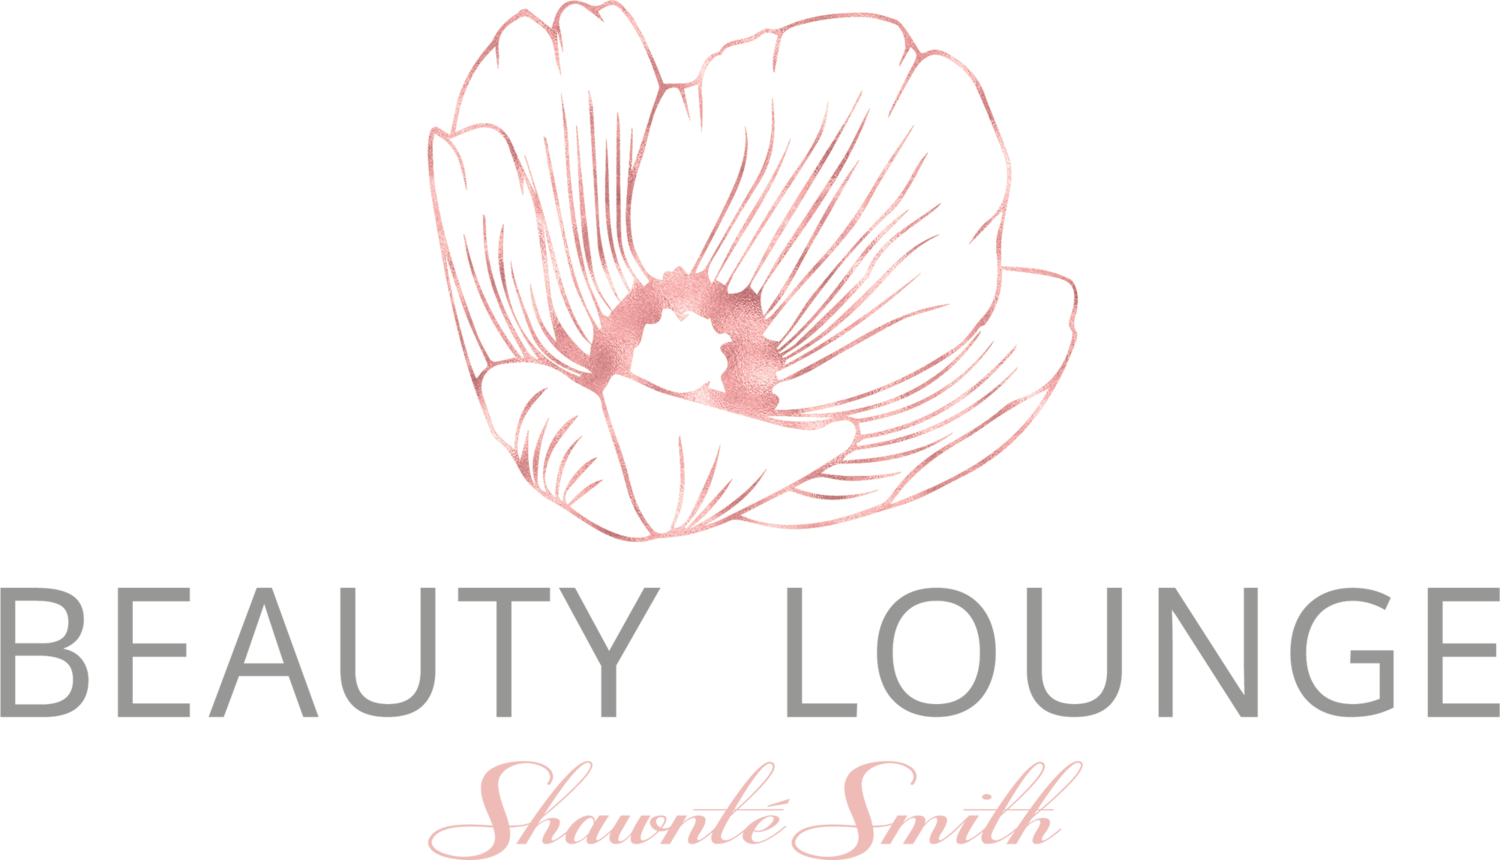 Beauty Lounge Denver